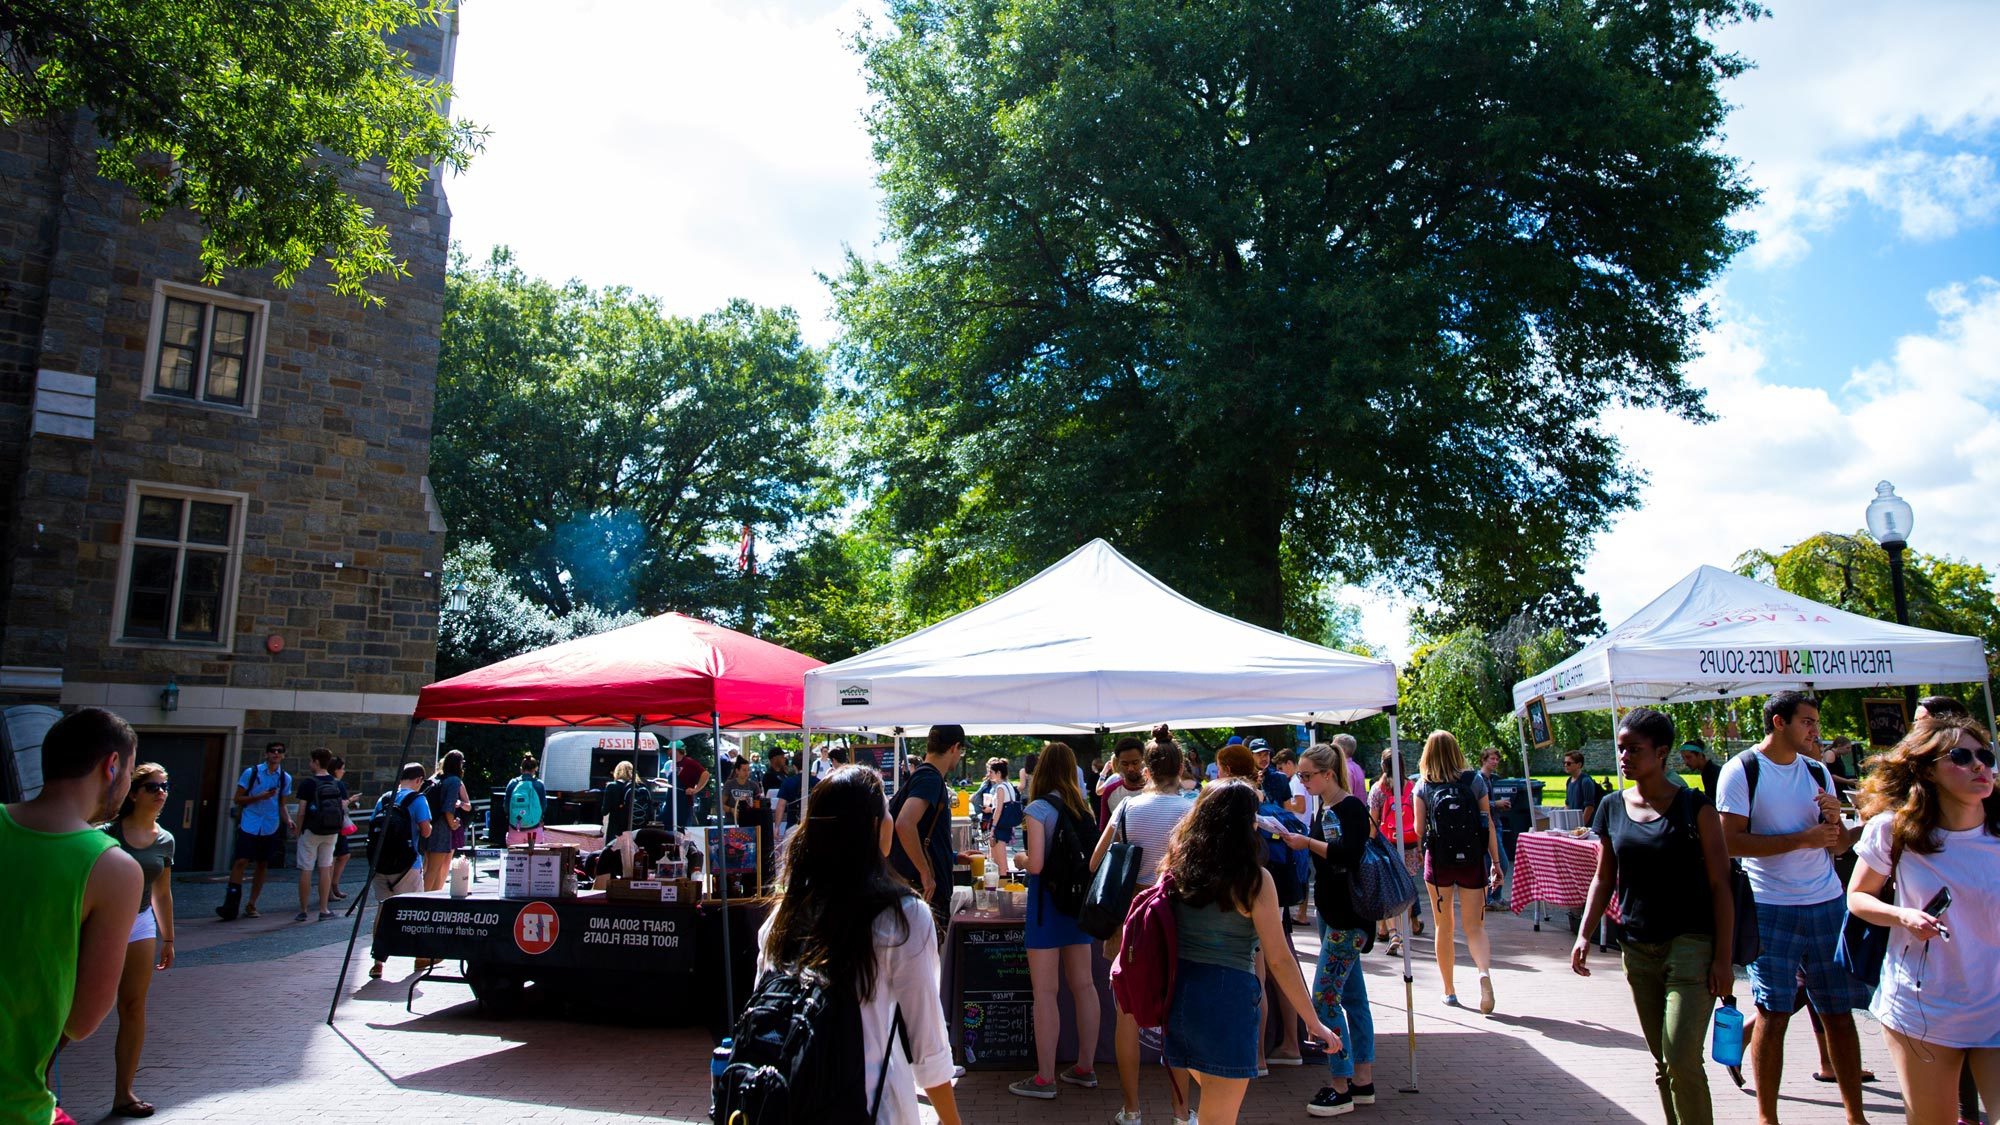 Local food vendors set up tents on campus to 的fer dishes to students during the weekly Farmer's Market.